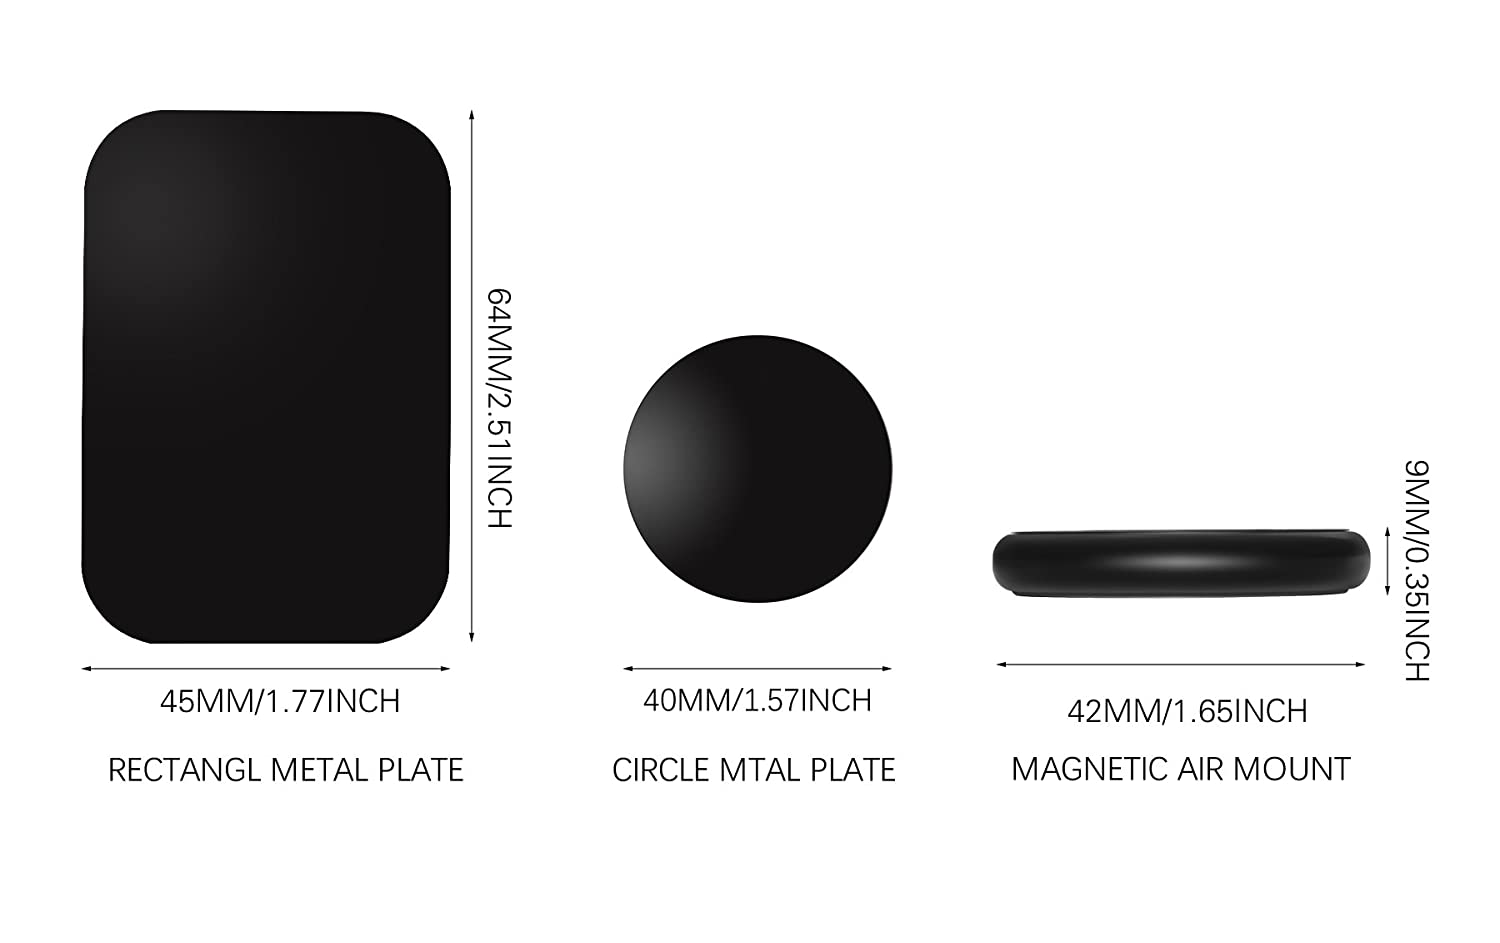 Galaxy S9//S8 S6//S7 Note 9 8 5 Echo Dot More Nekteck Universal Stick on Flat Magnetic Car Mount Phone//Key Holder for iPhone X//8//7 6S// 6 6 Plus Pixel 3//2 XL Nexus 6P 5X SE 4Pack LG G7 G6